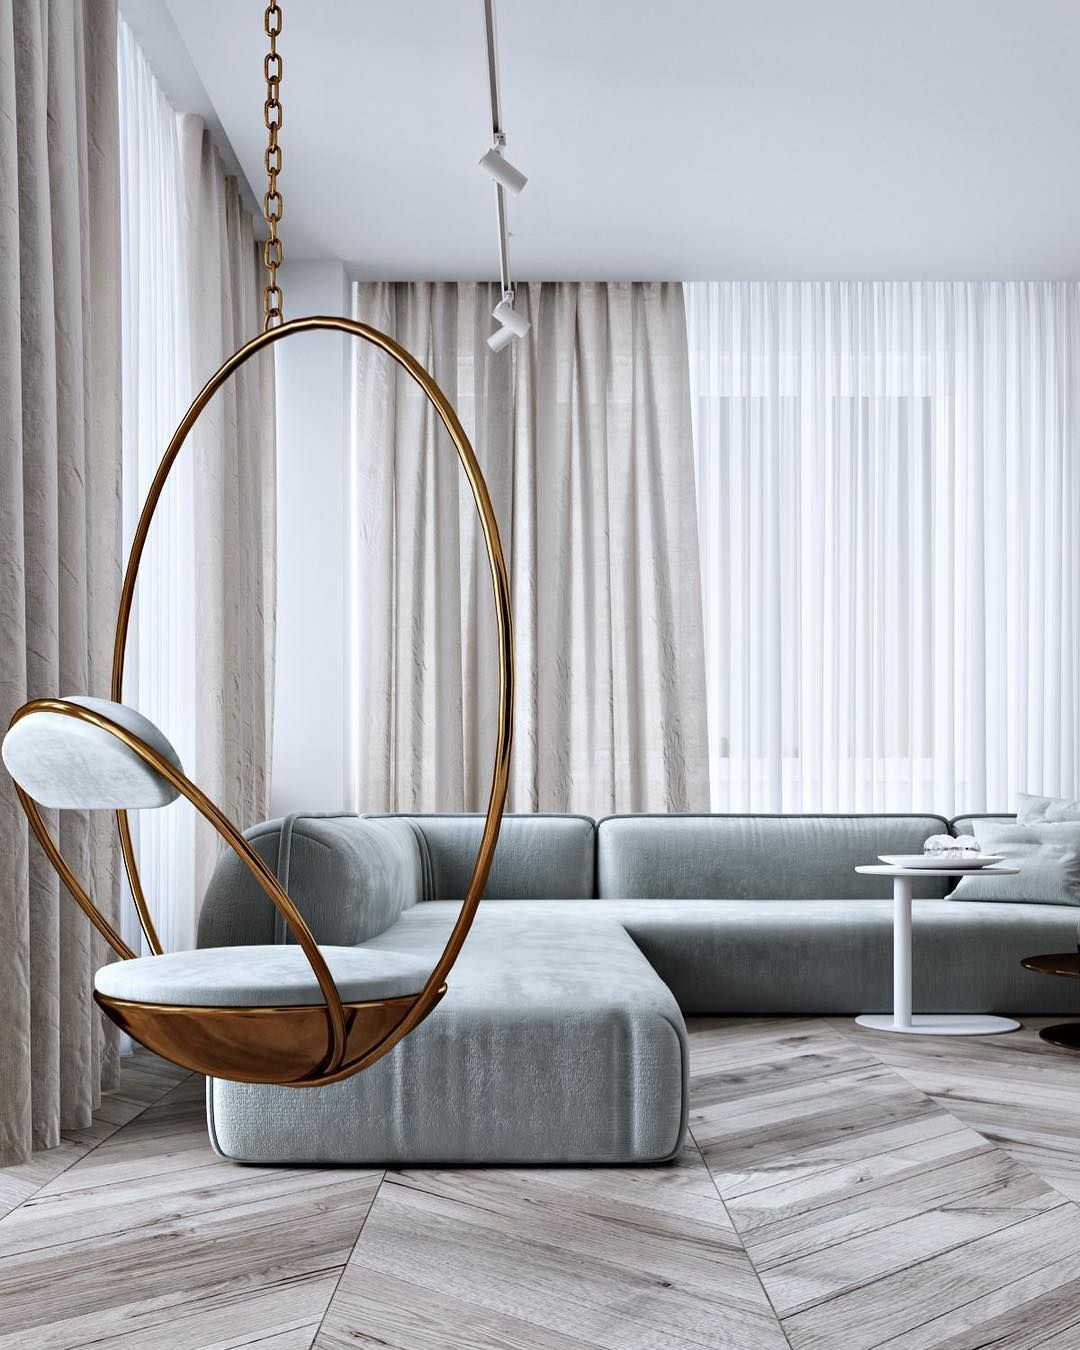 Gold Hanging Chair By Studio Home Design P Roduct Product Design Productd Minimalist Living Room Design Living Room Design Modern Minimalist Living Room